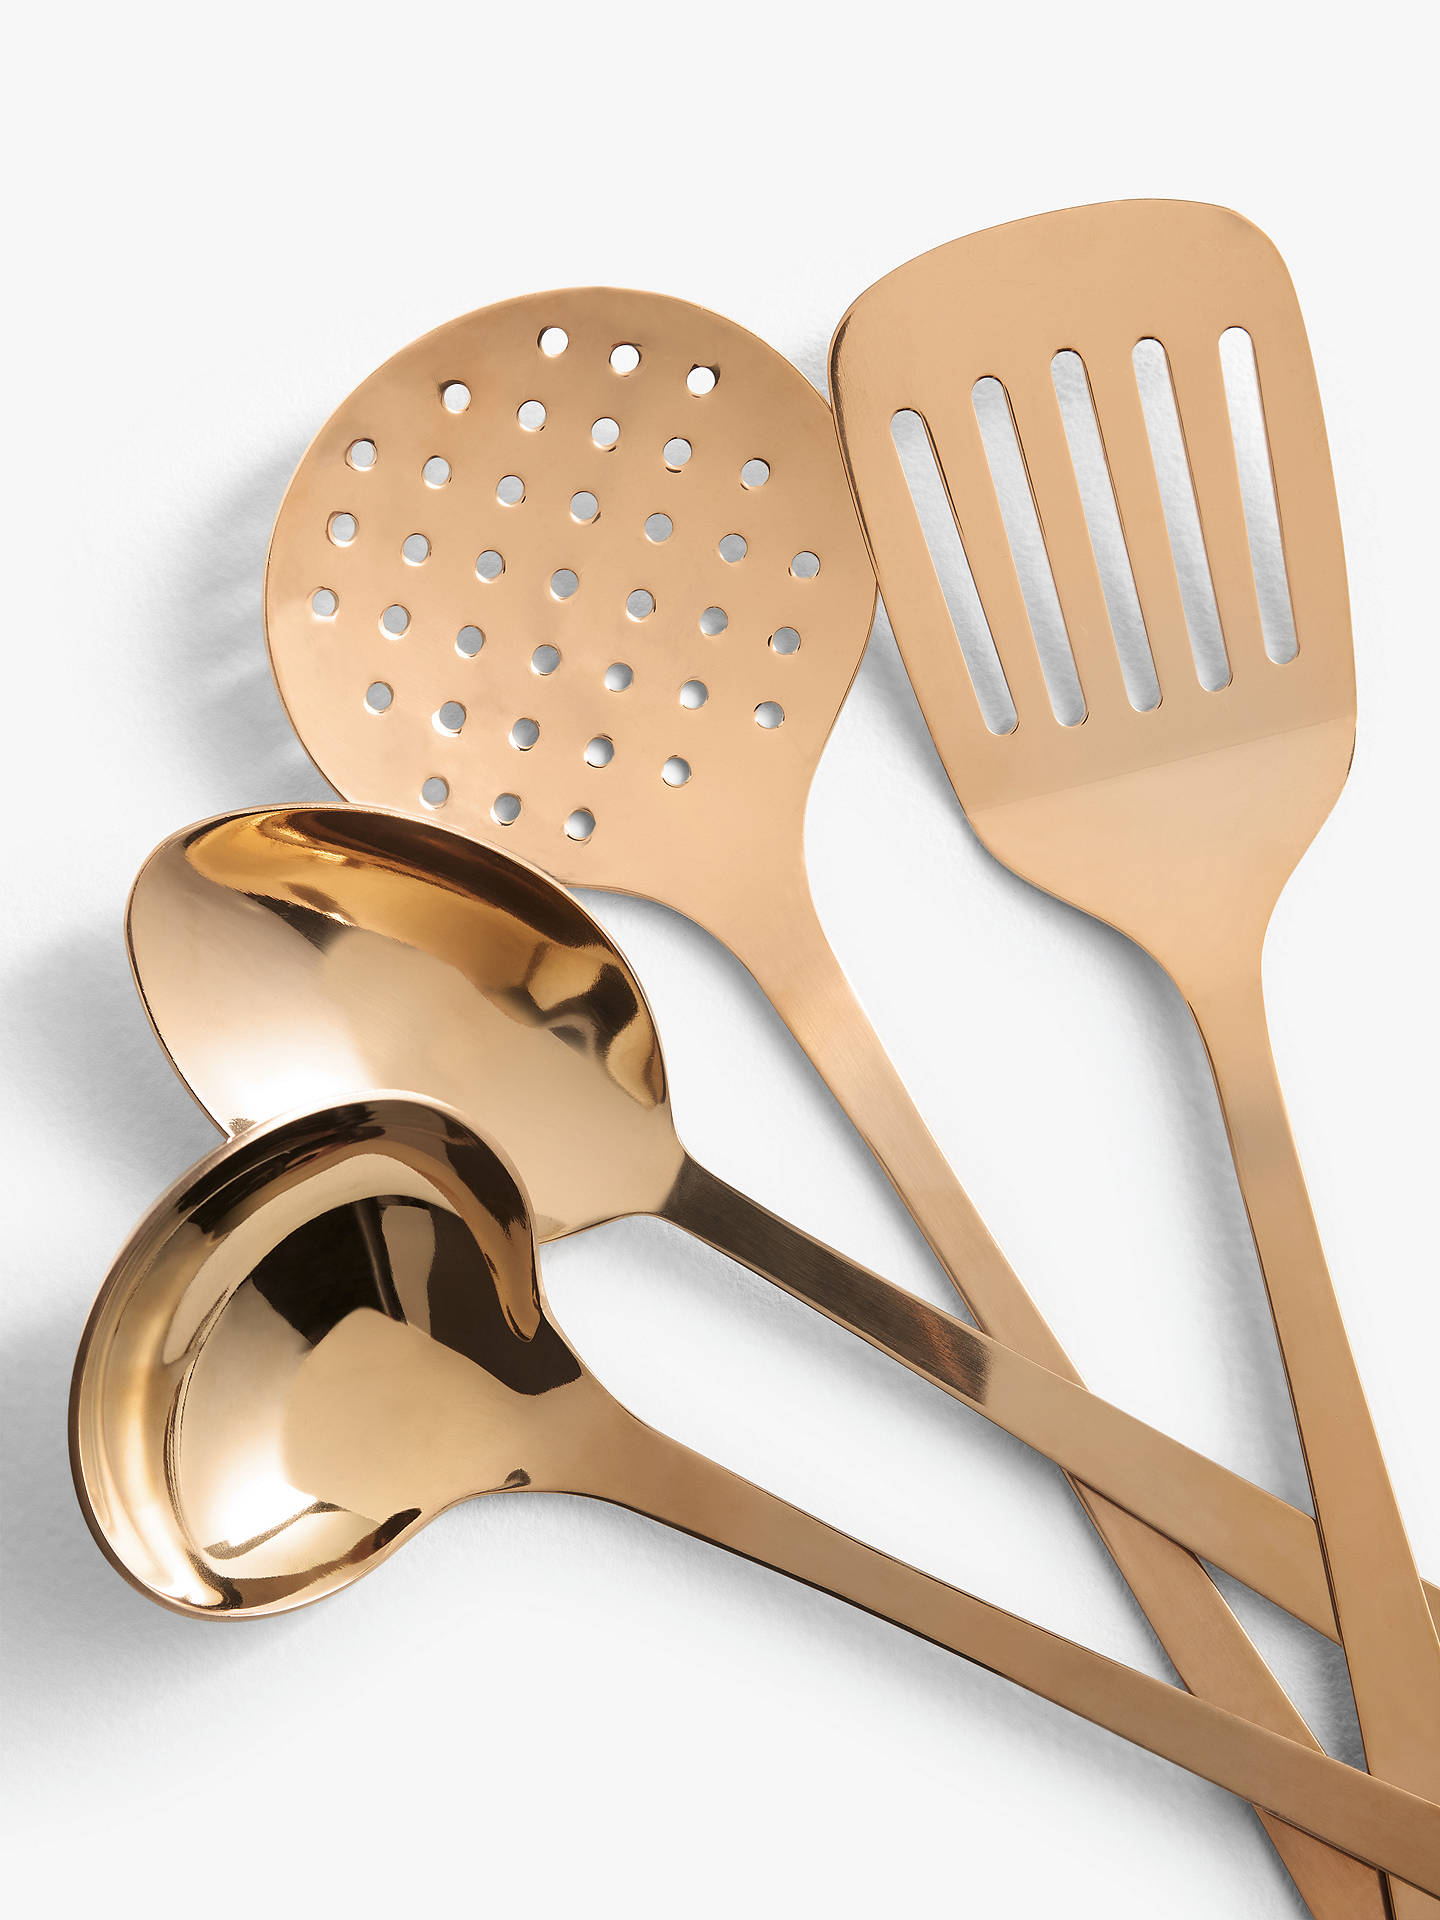 John Lewis & Partners Stainless Steel Kitchen Utensils, Set of 8, Rose Gold